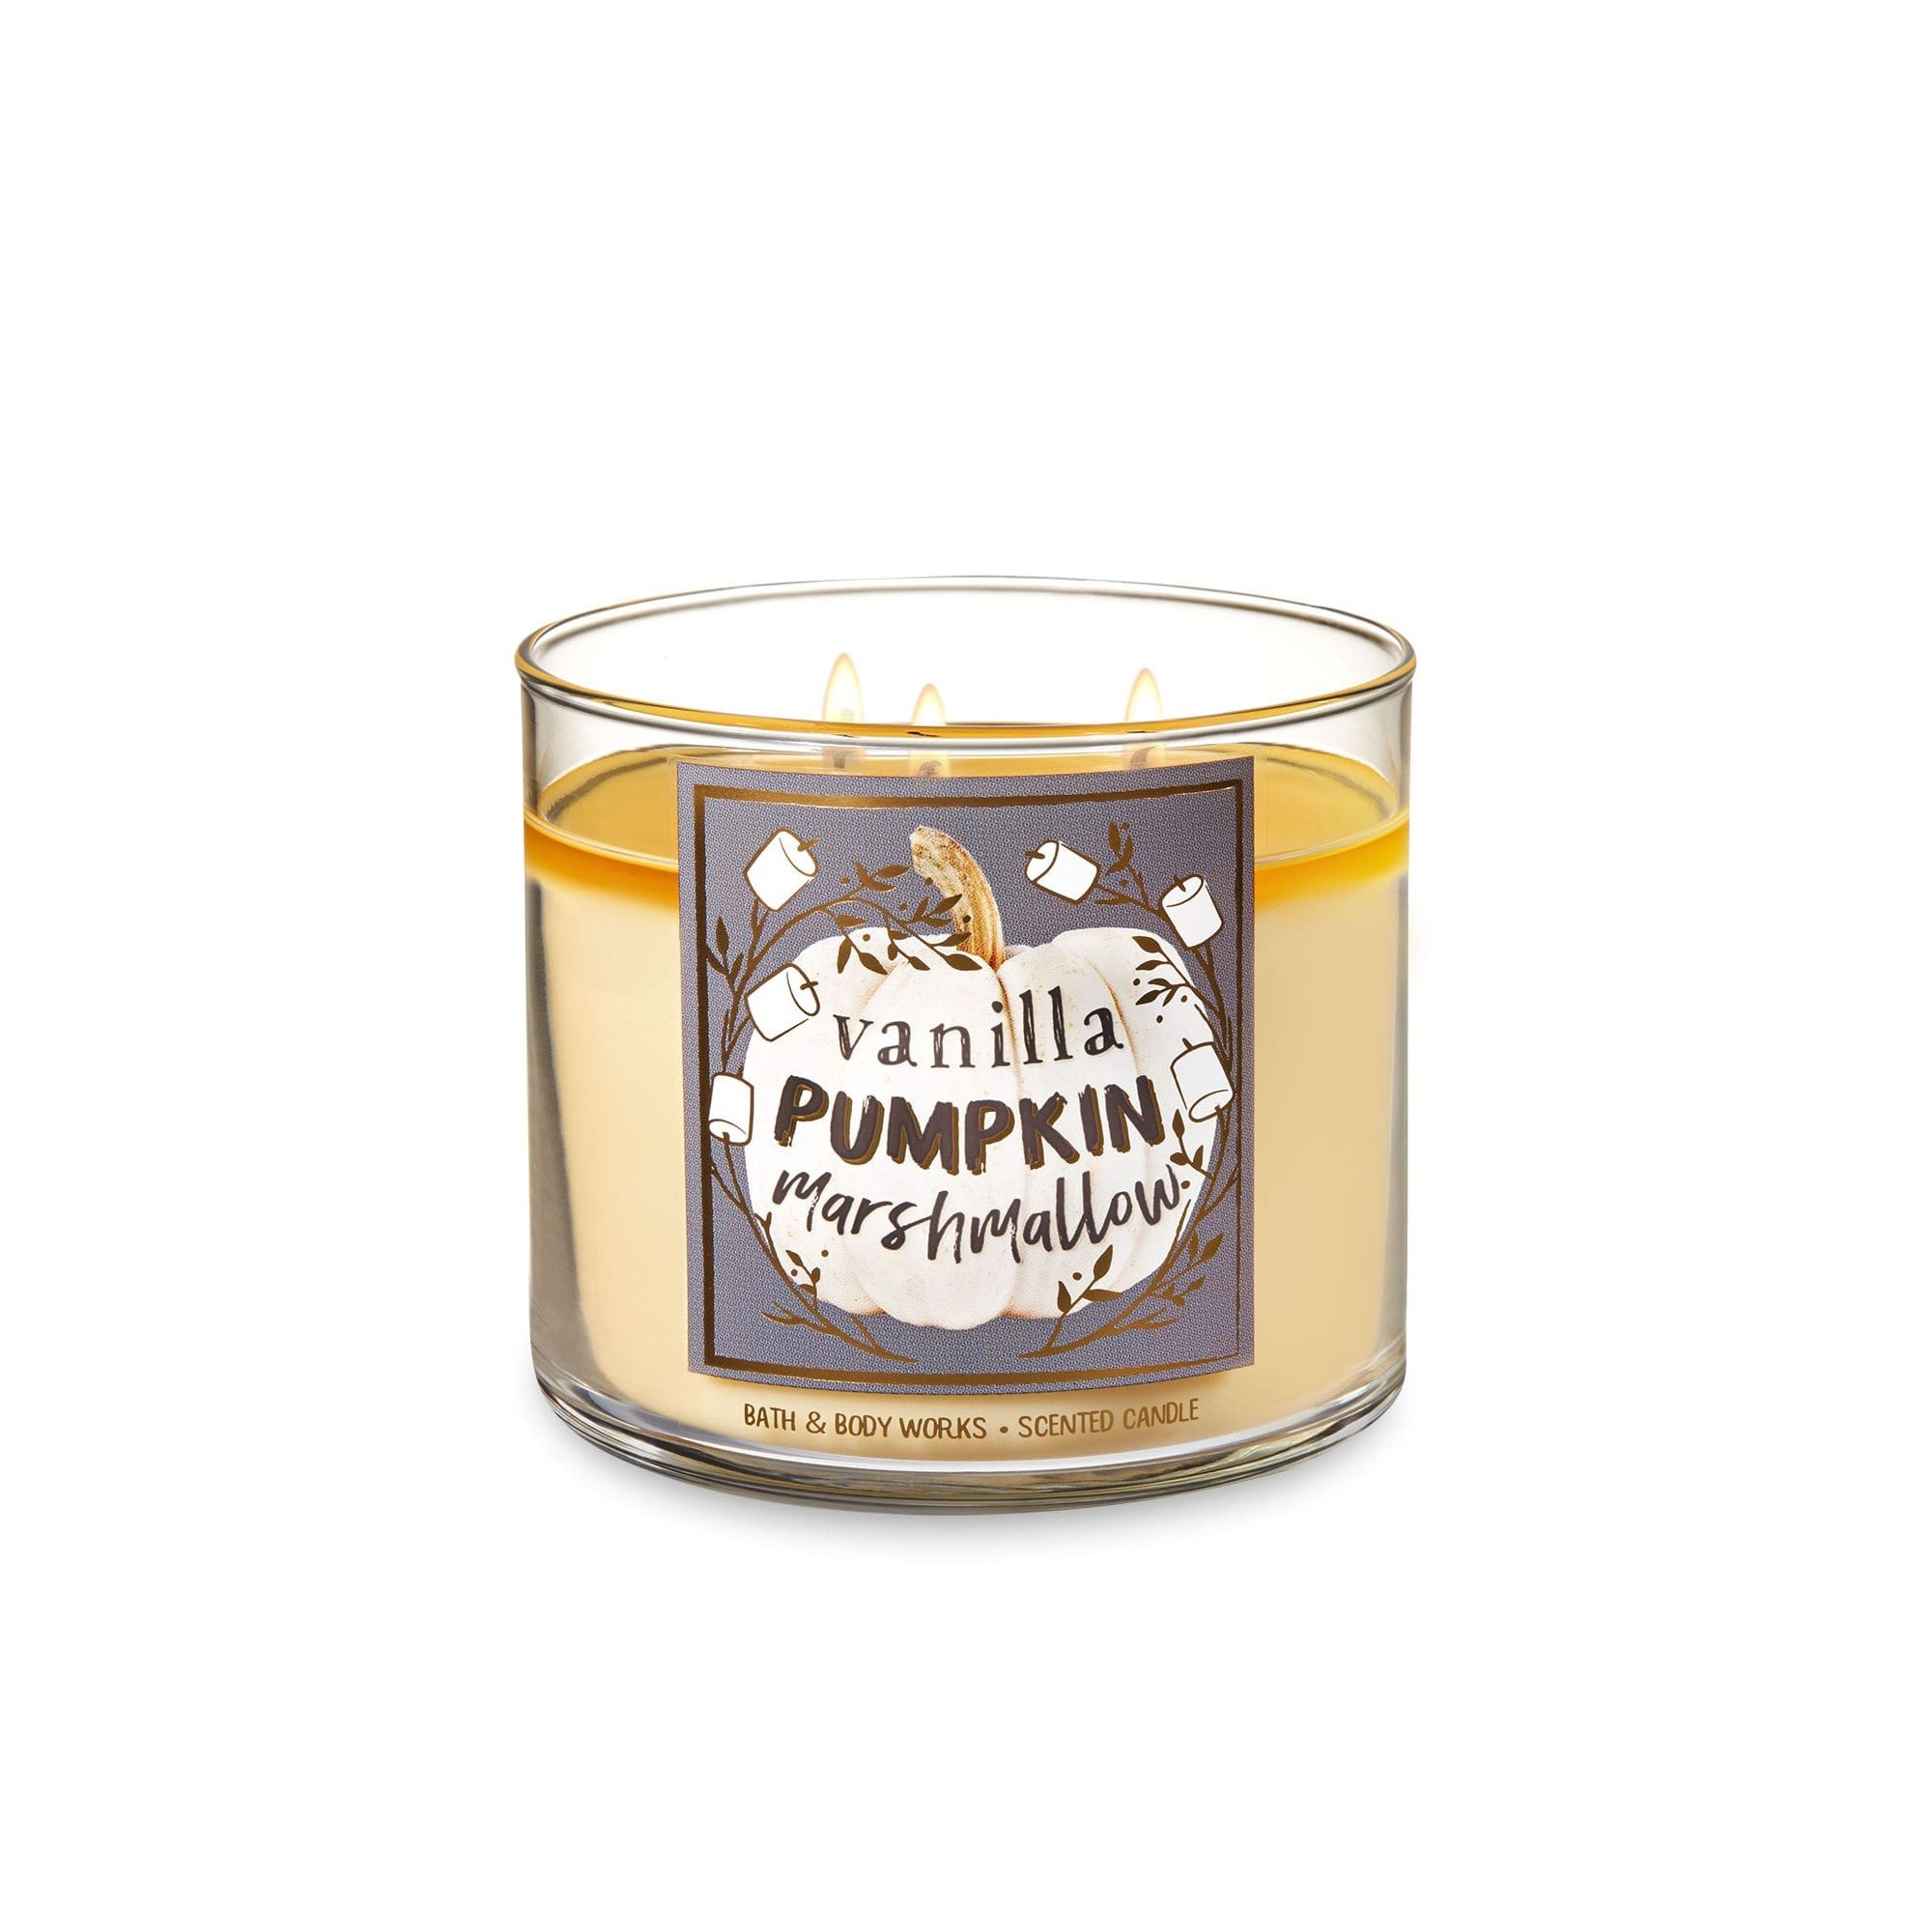 Bath & Body Works Vanilla Pumpkin Marshmallow 3 Wick Scented Candle